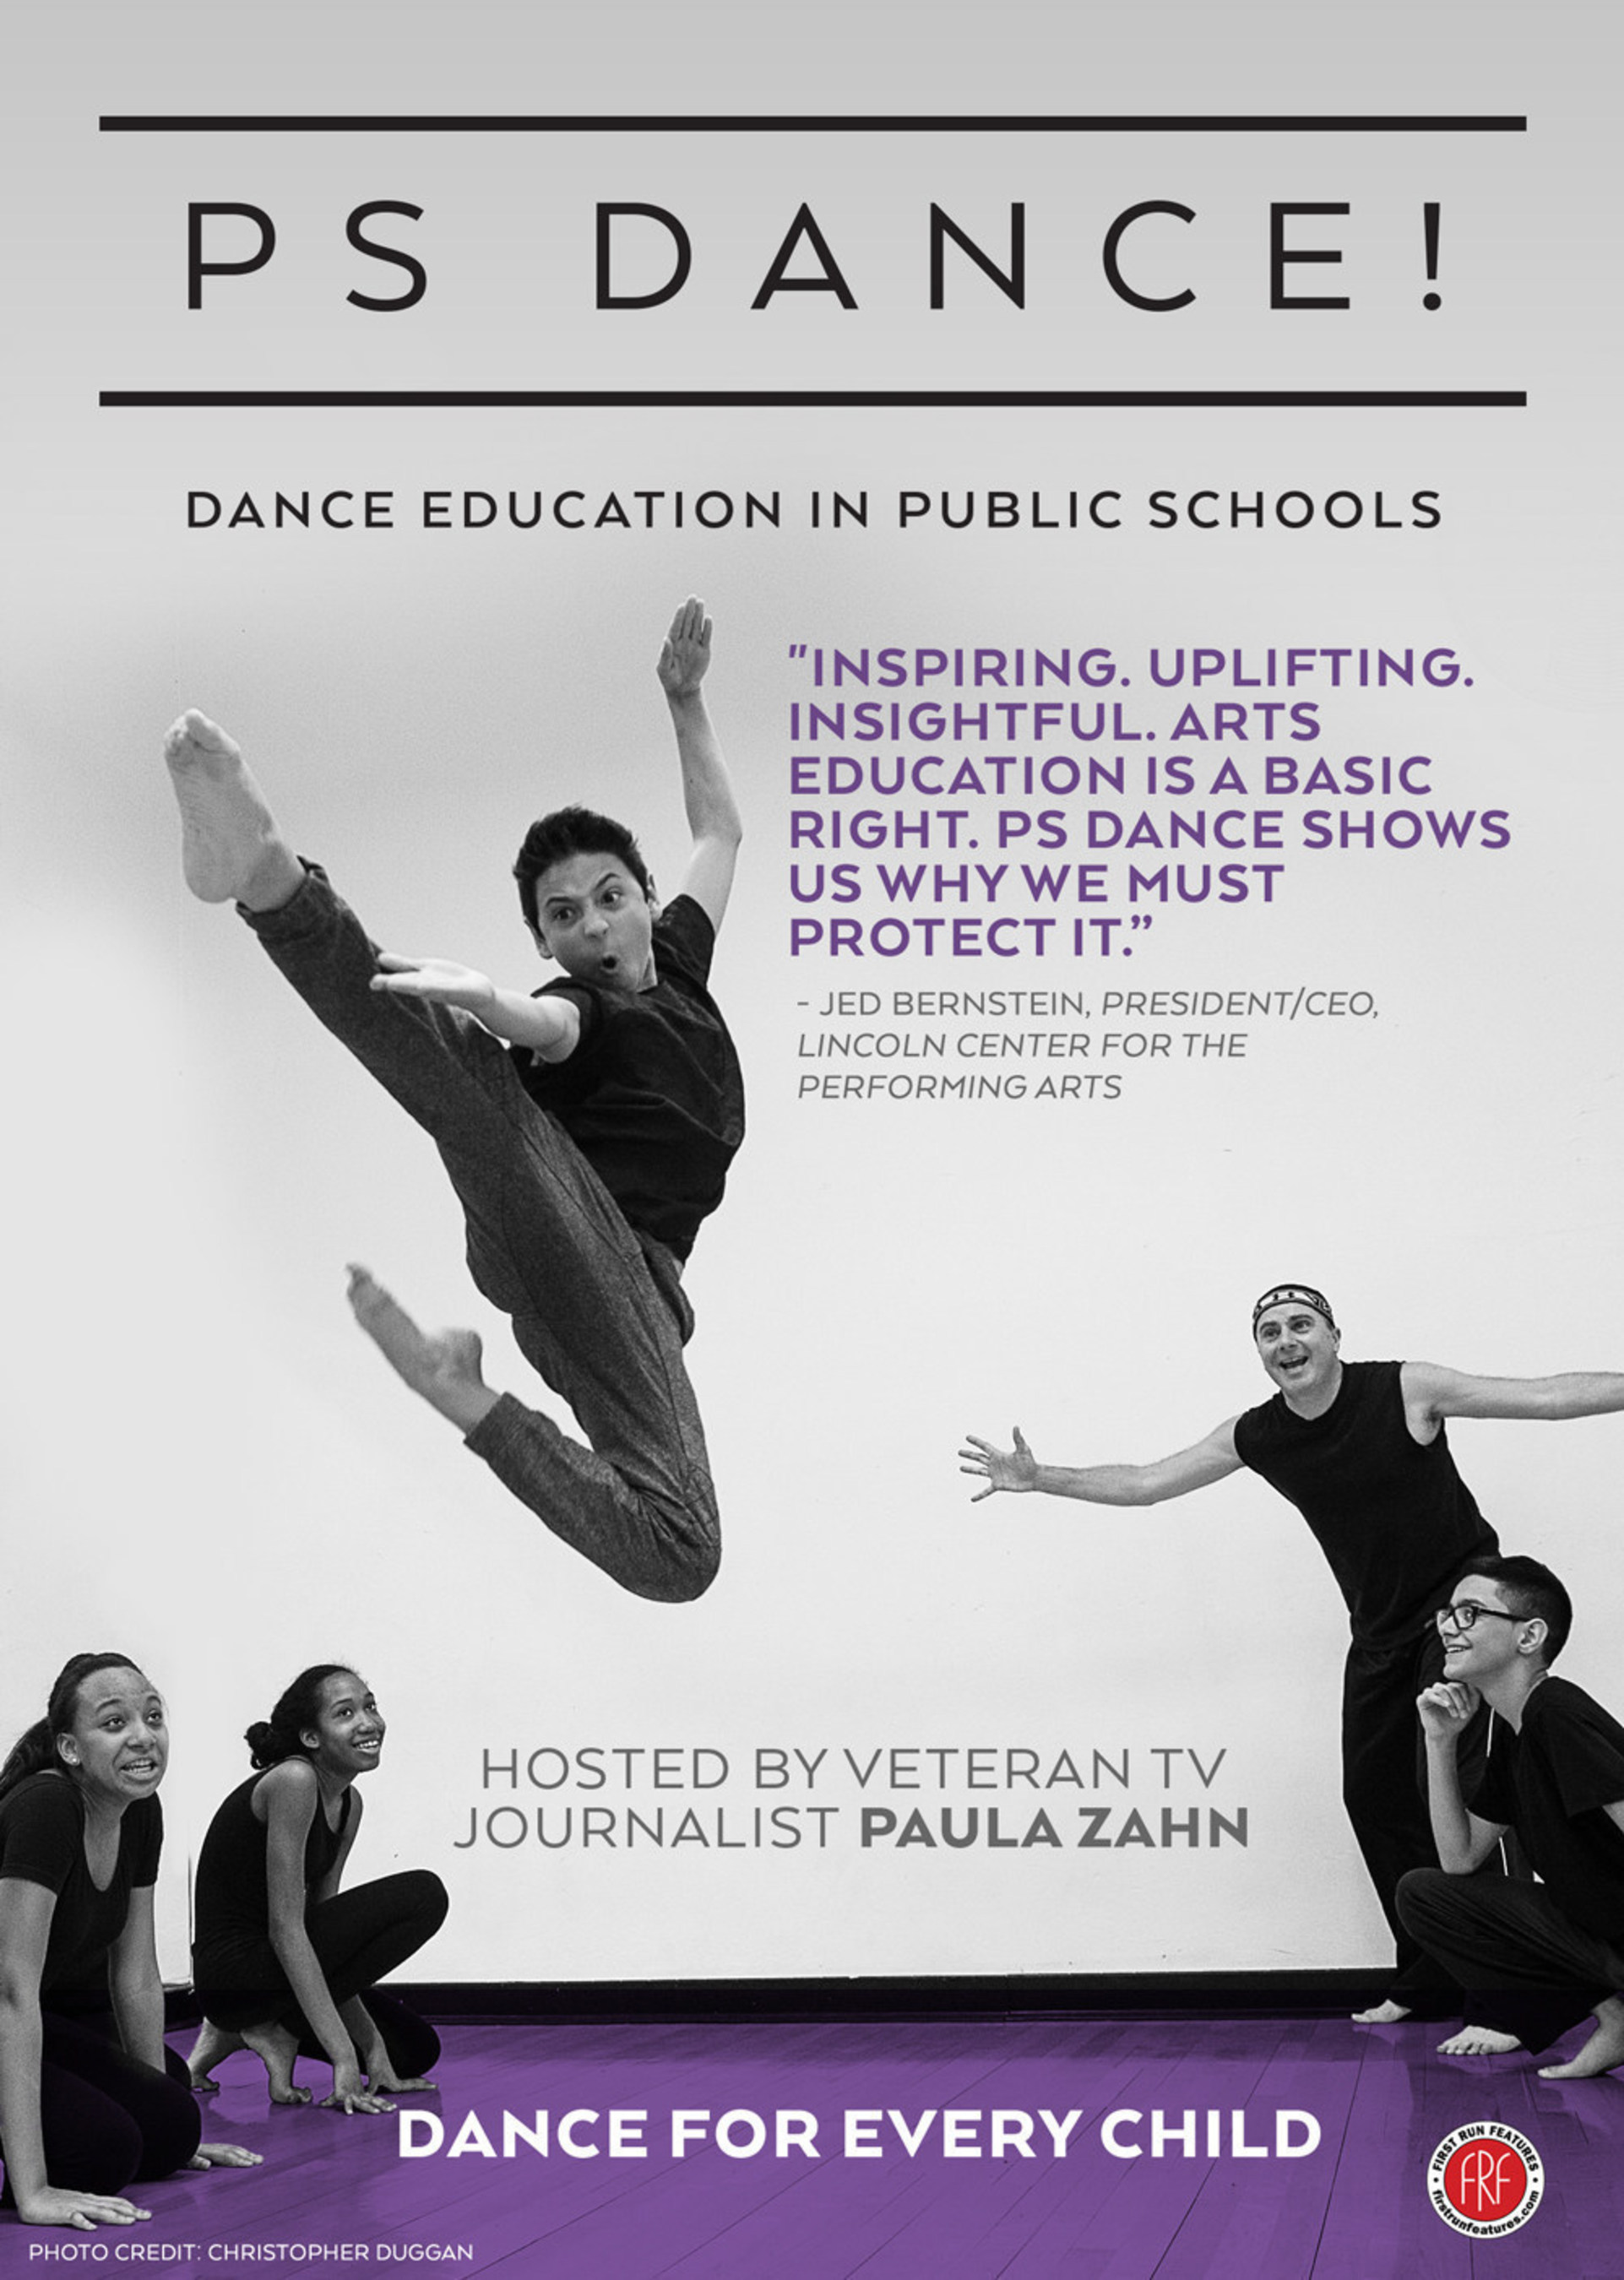 New dance education documentary ps dance reveals transformative ps dance is an inspiring documentary showcasing the profound effects of dance education in nyc malvernweather Images